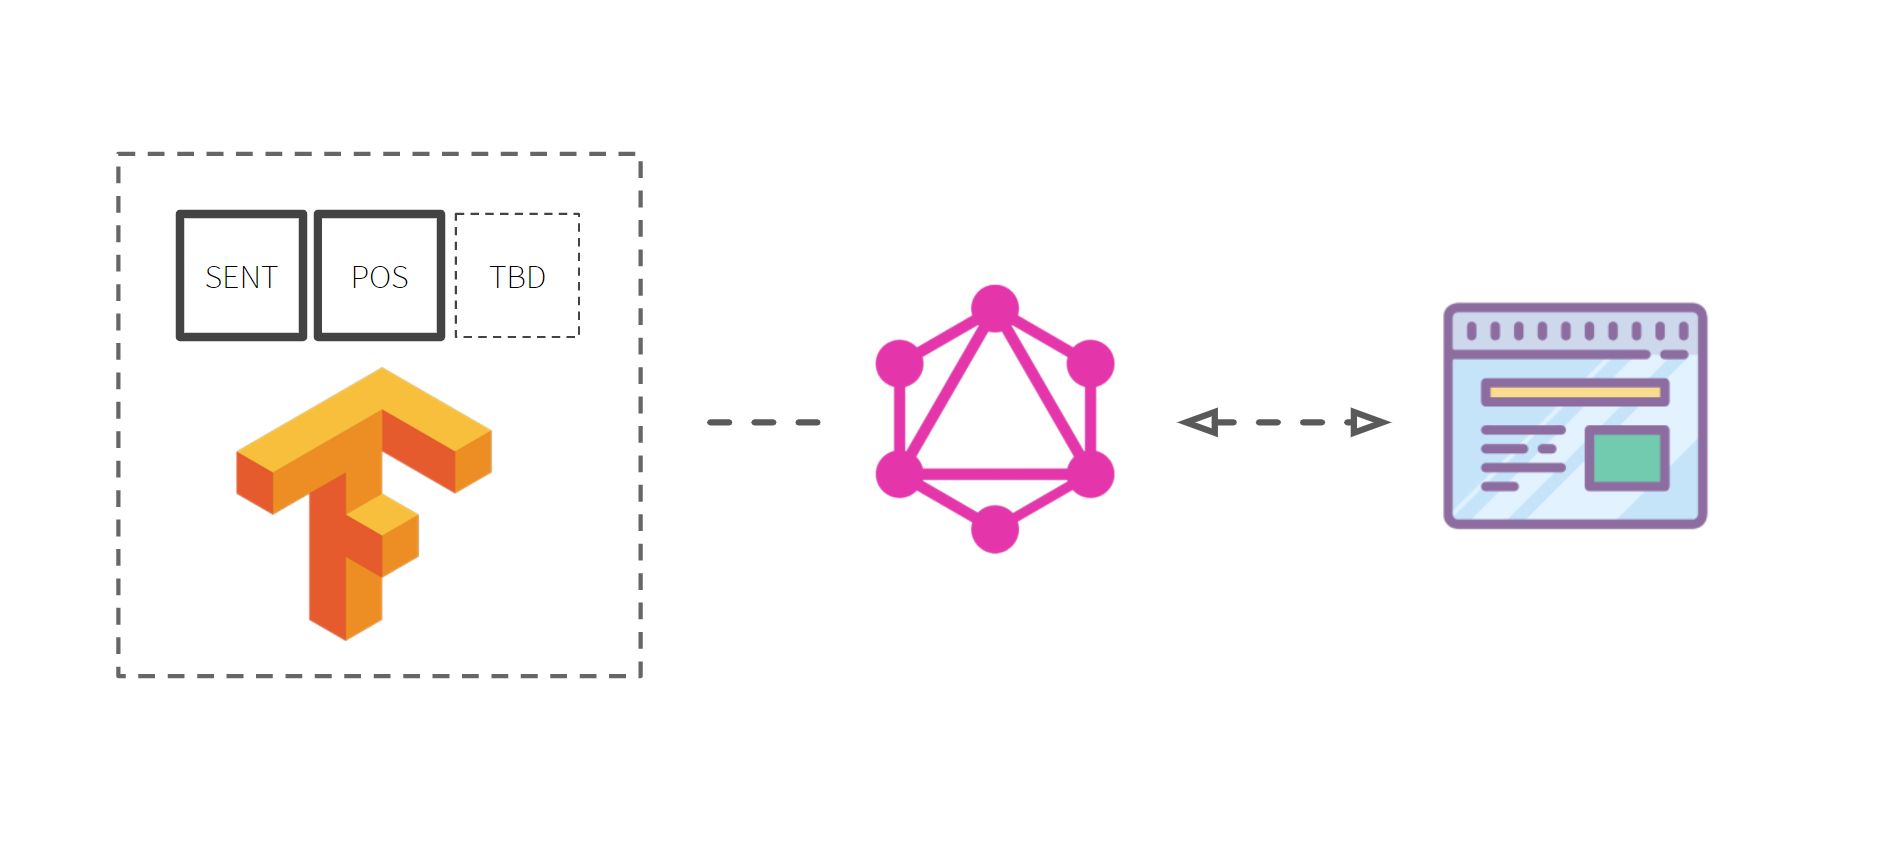 Stack  GraphQL is the interface for communication, with custom modules built on Tensorflow.js coming together to provide the computational business logic the API serves.